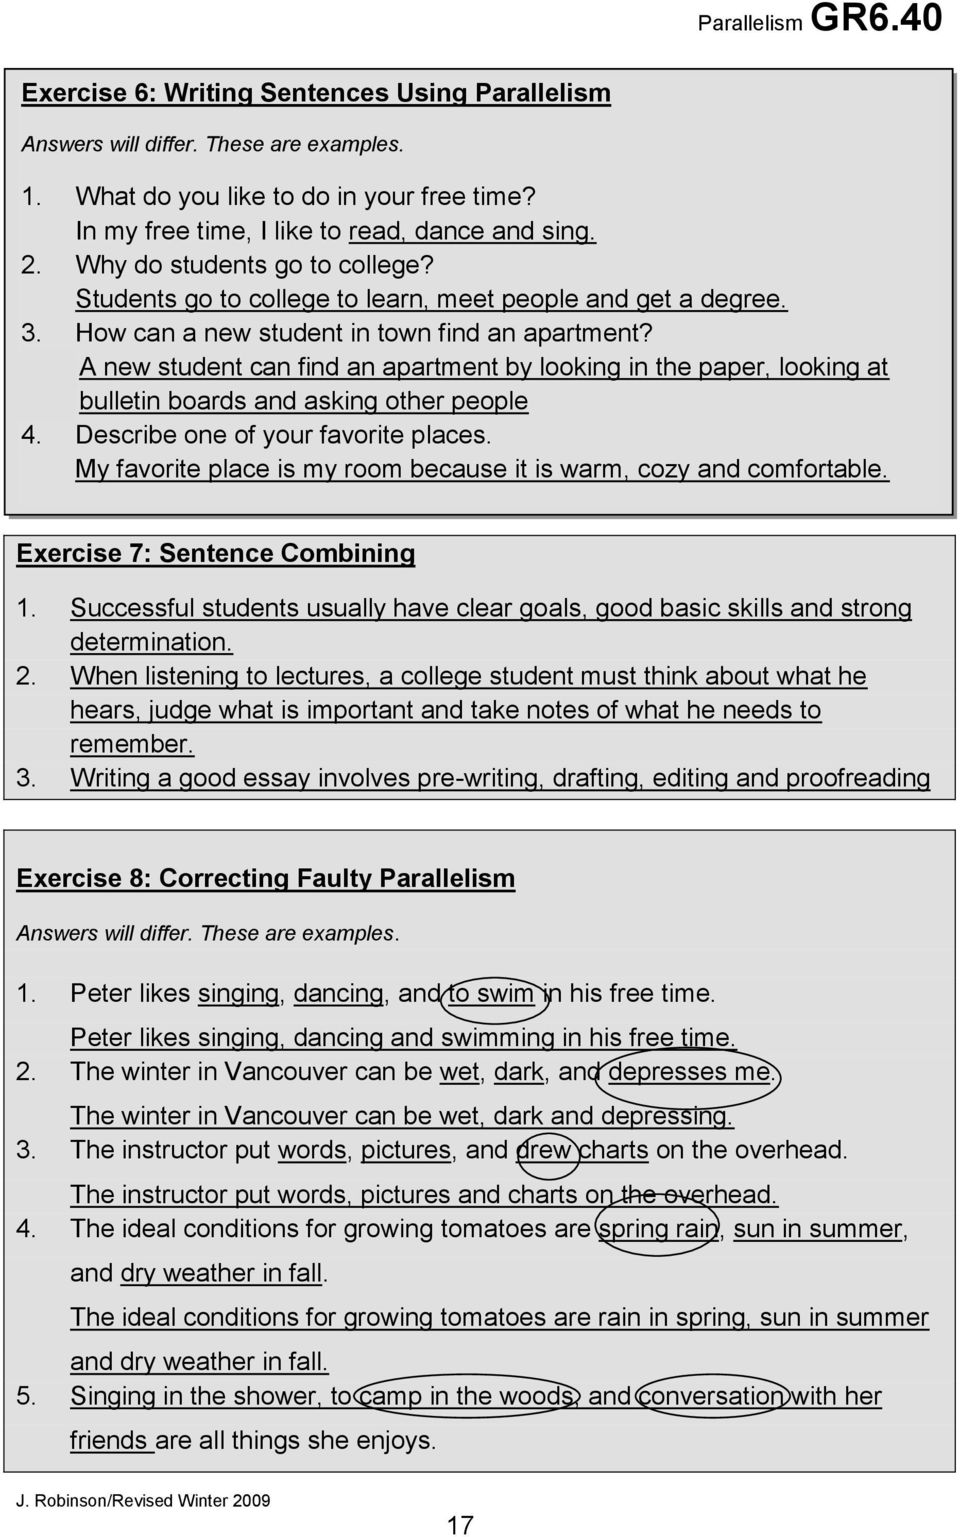 describing people essay learning centre parallelism pdf write  learning centre parallelism pdf a new student can an apartment by looking in the paper looking